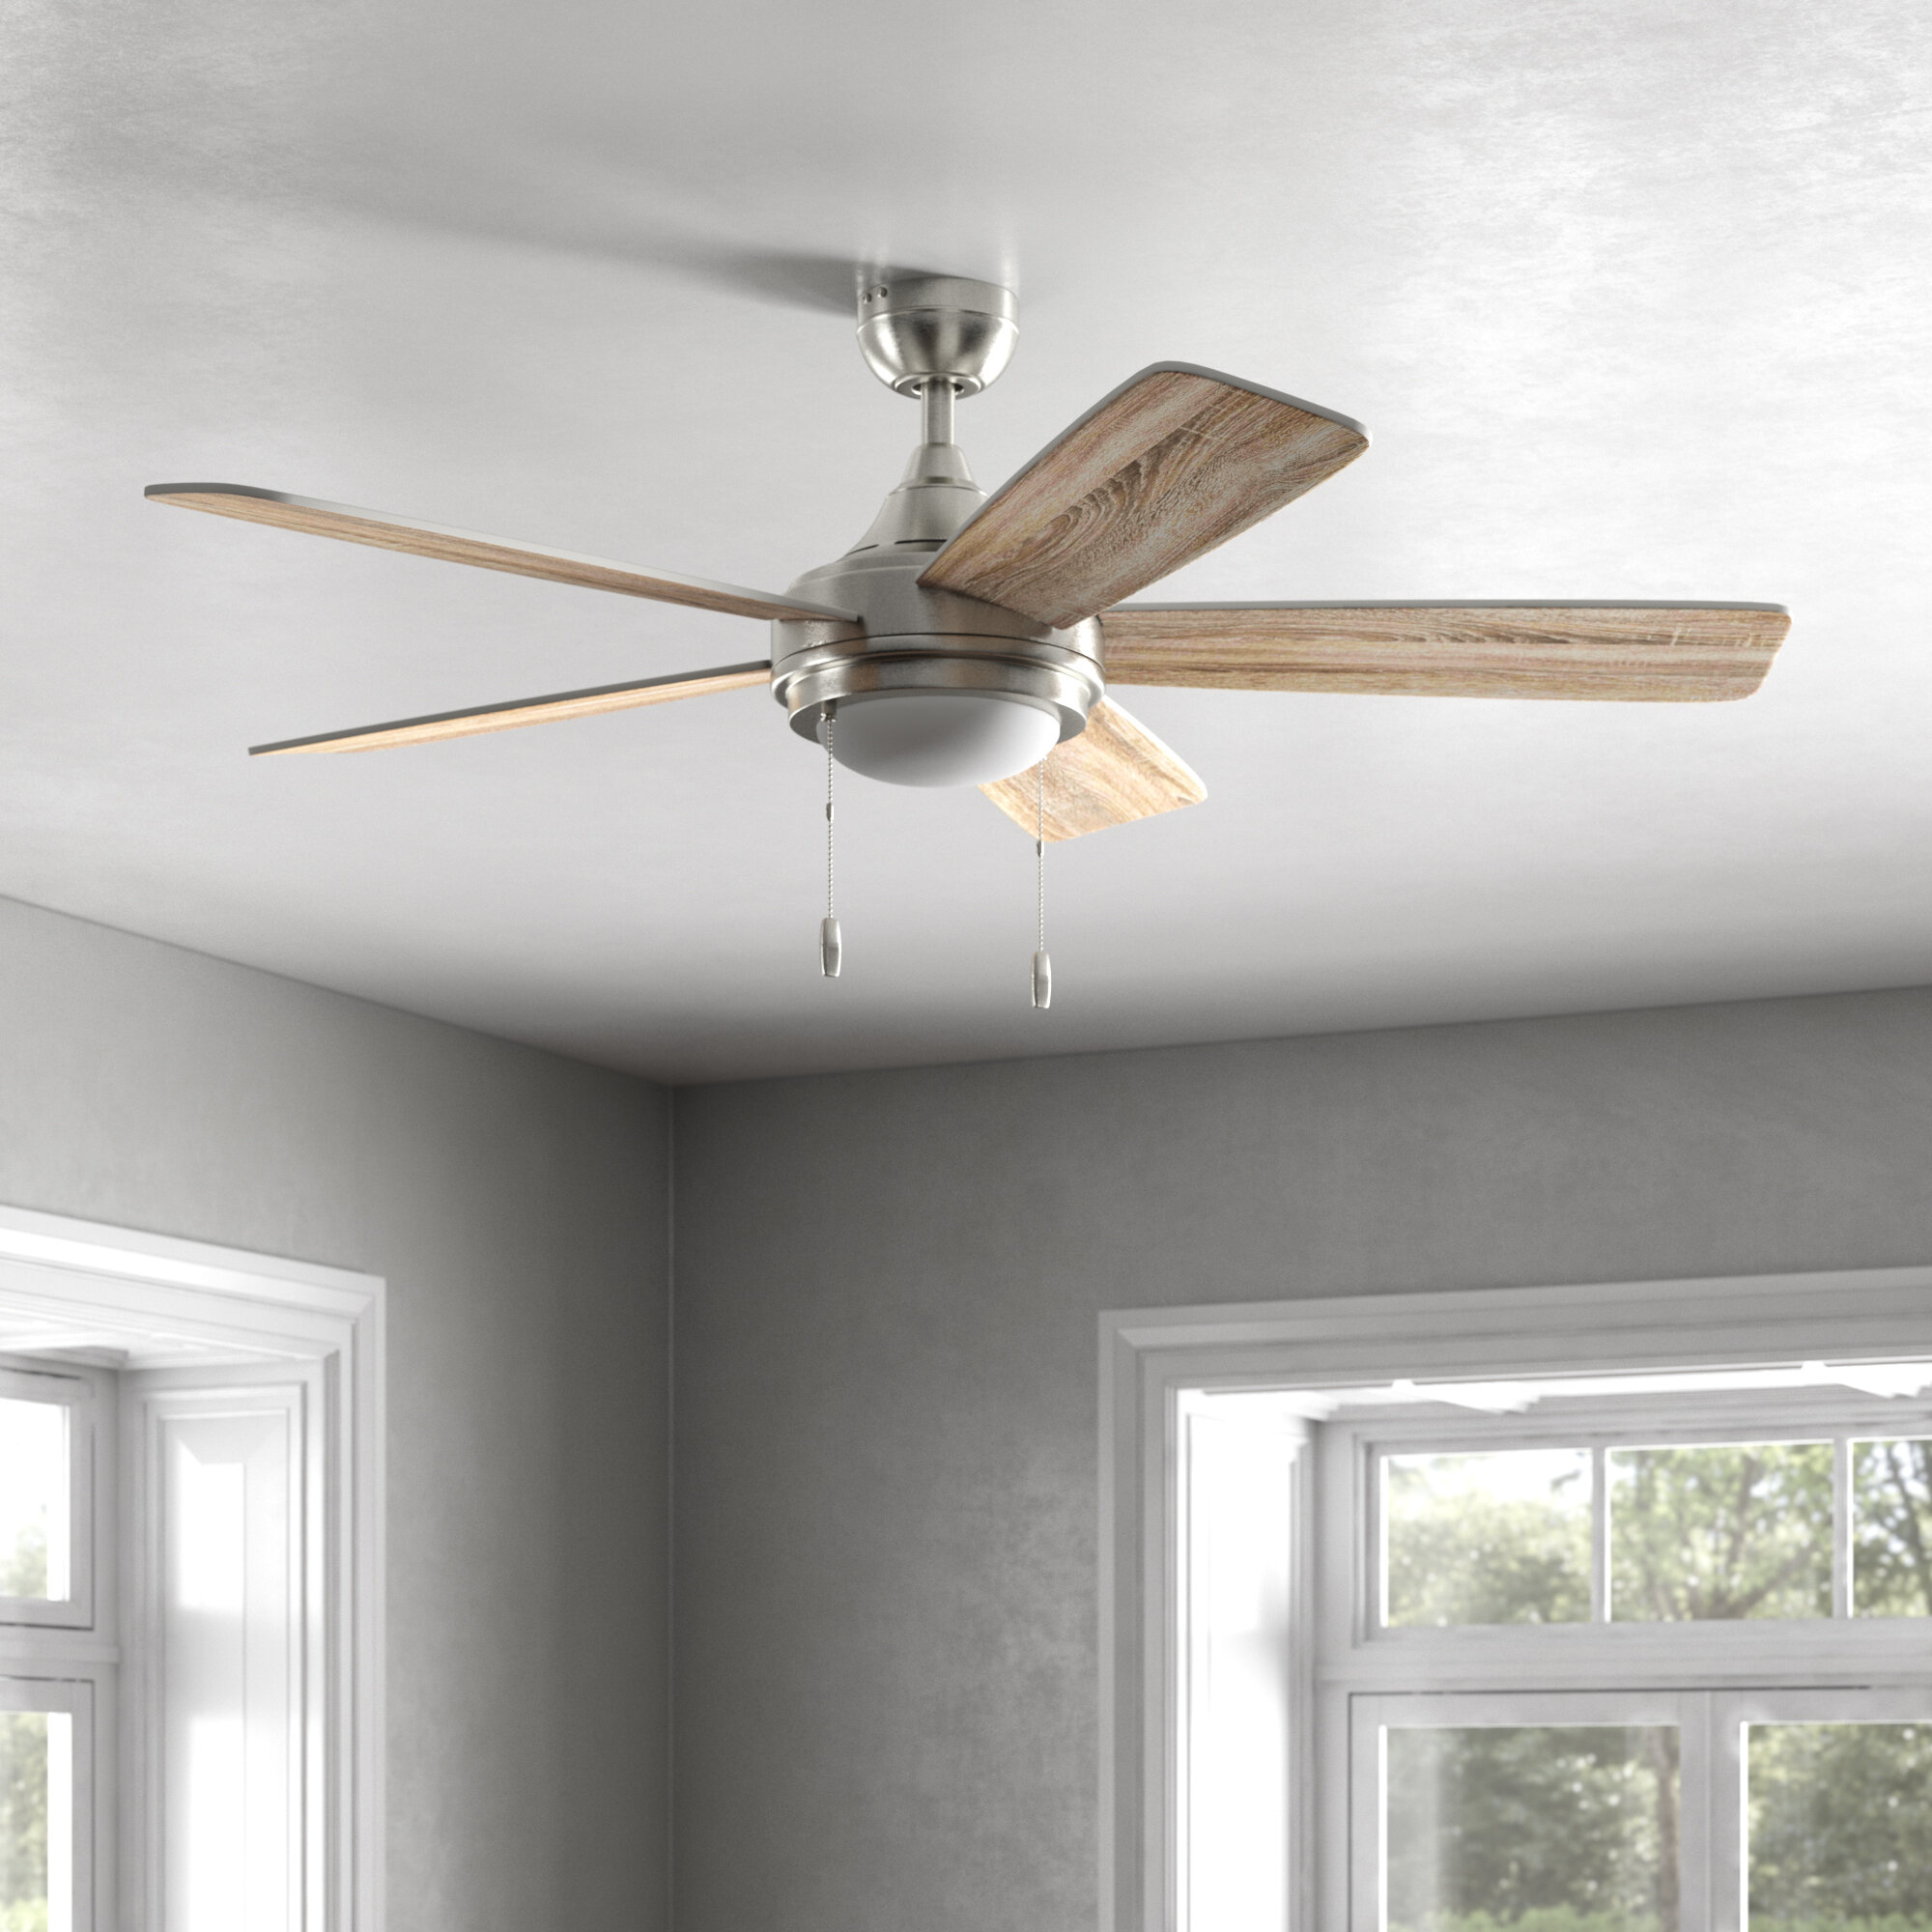 Breakwater Bay Pippin Led Standard Ceiling Fan With Pull Chain And Light Kit Included Reviews Wayfair